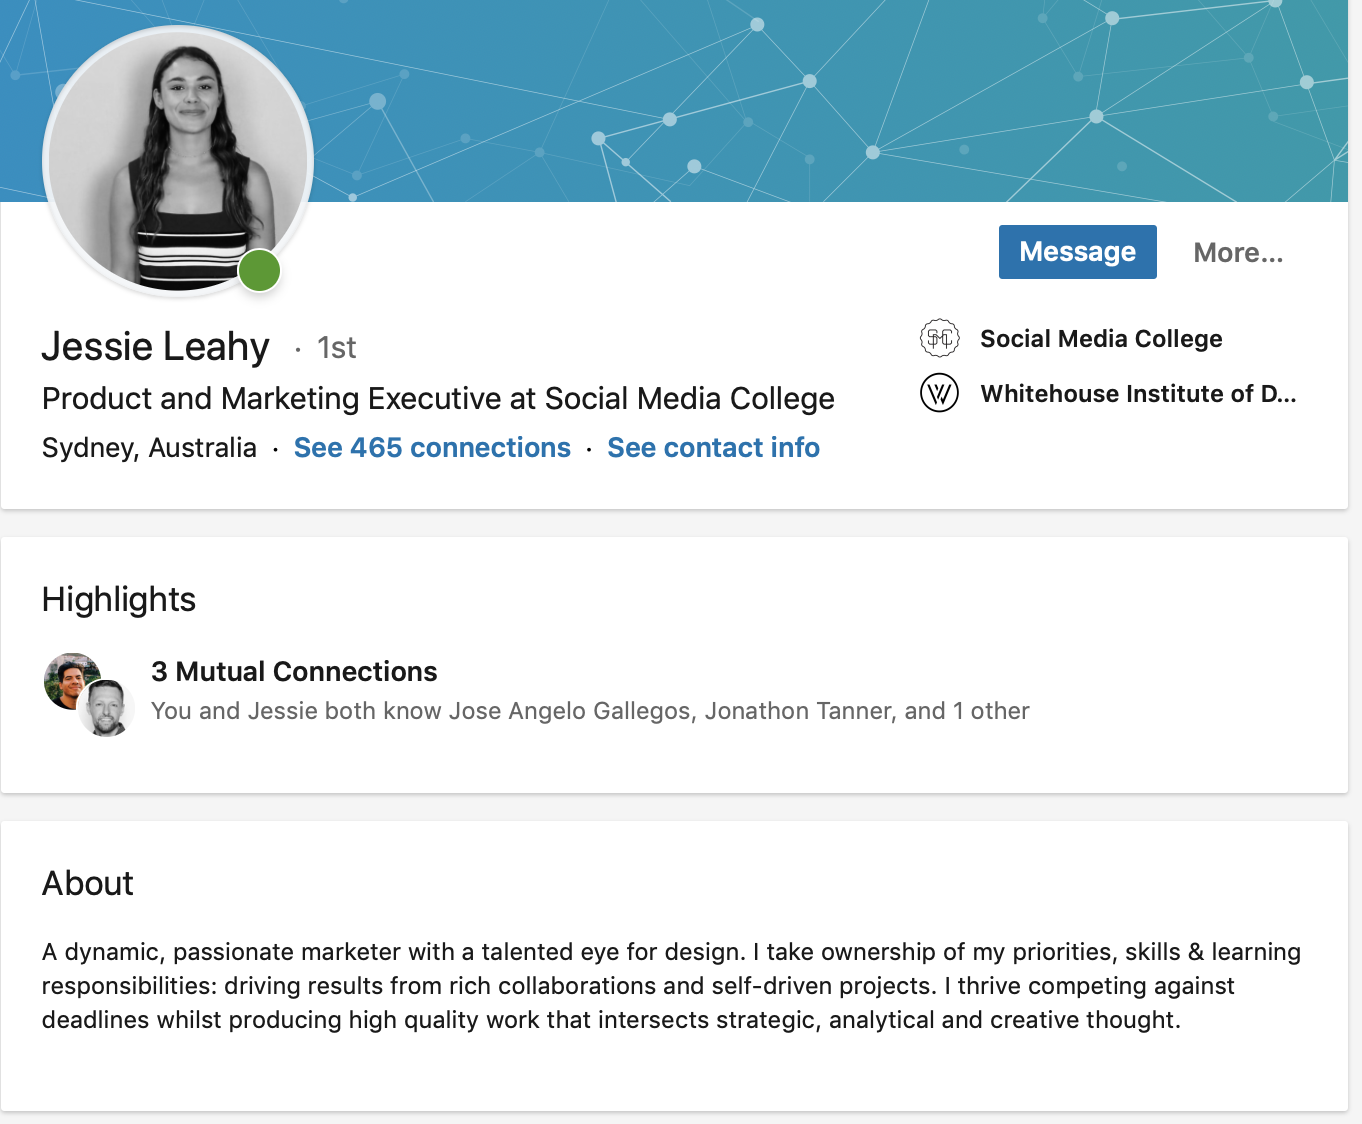 Examples of a fully optimised LinkedIn profile from Social Media College